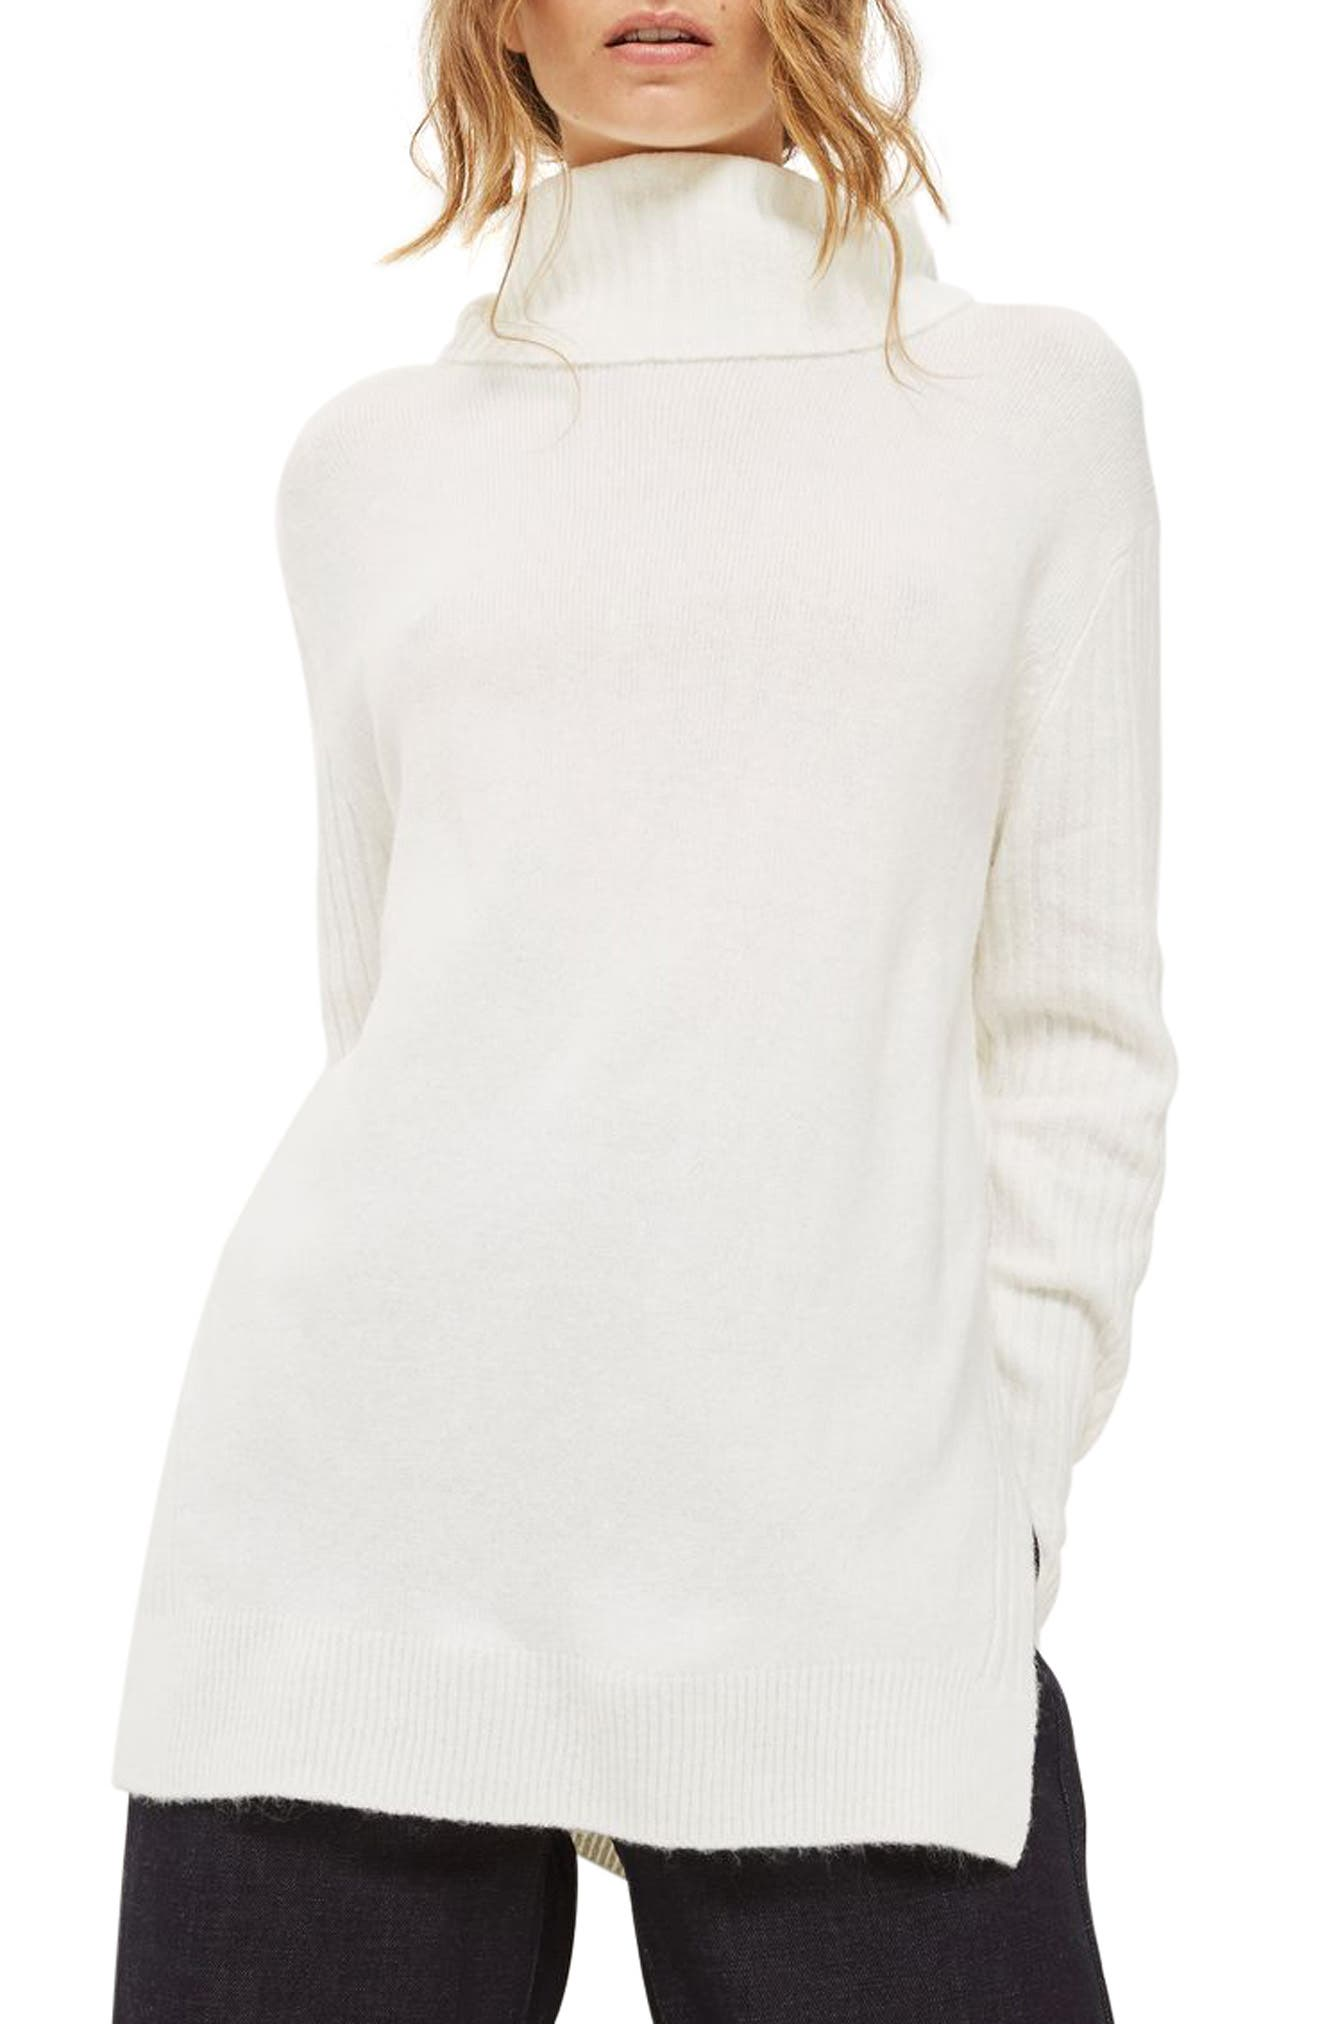 Oversize Turtleneck Sweater,                             Main thumbnail 1, color,                             Ivory